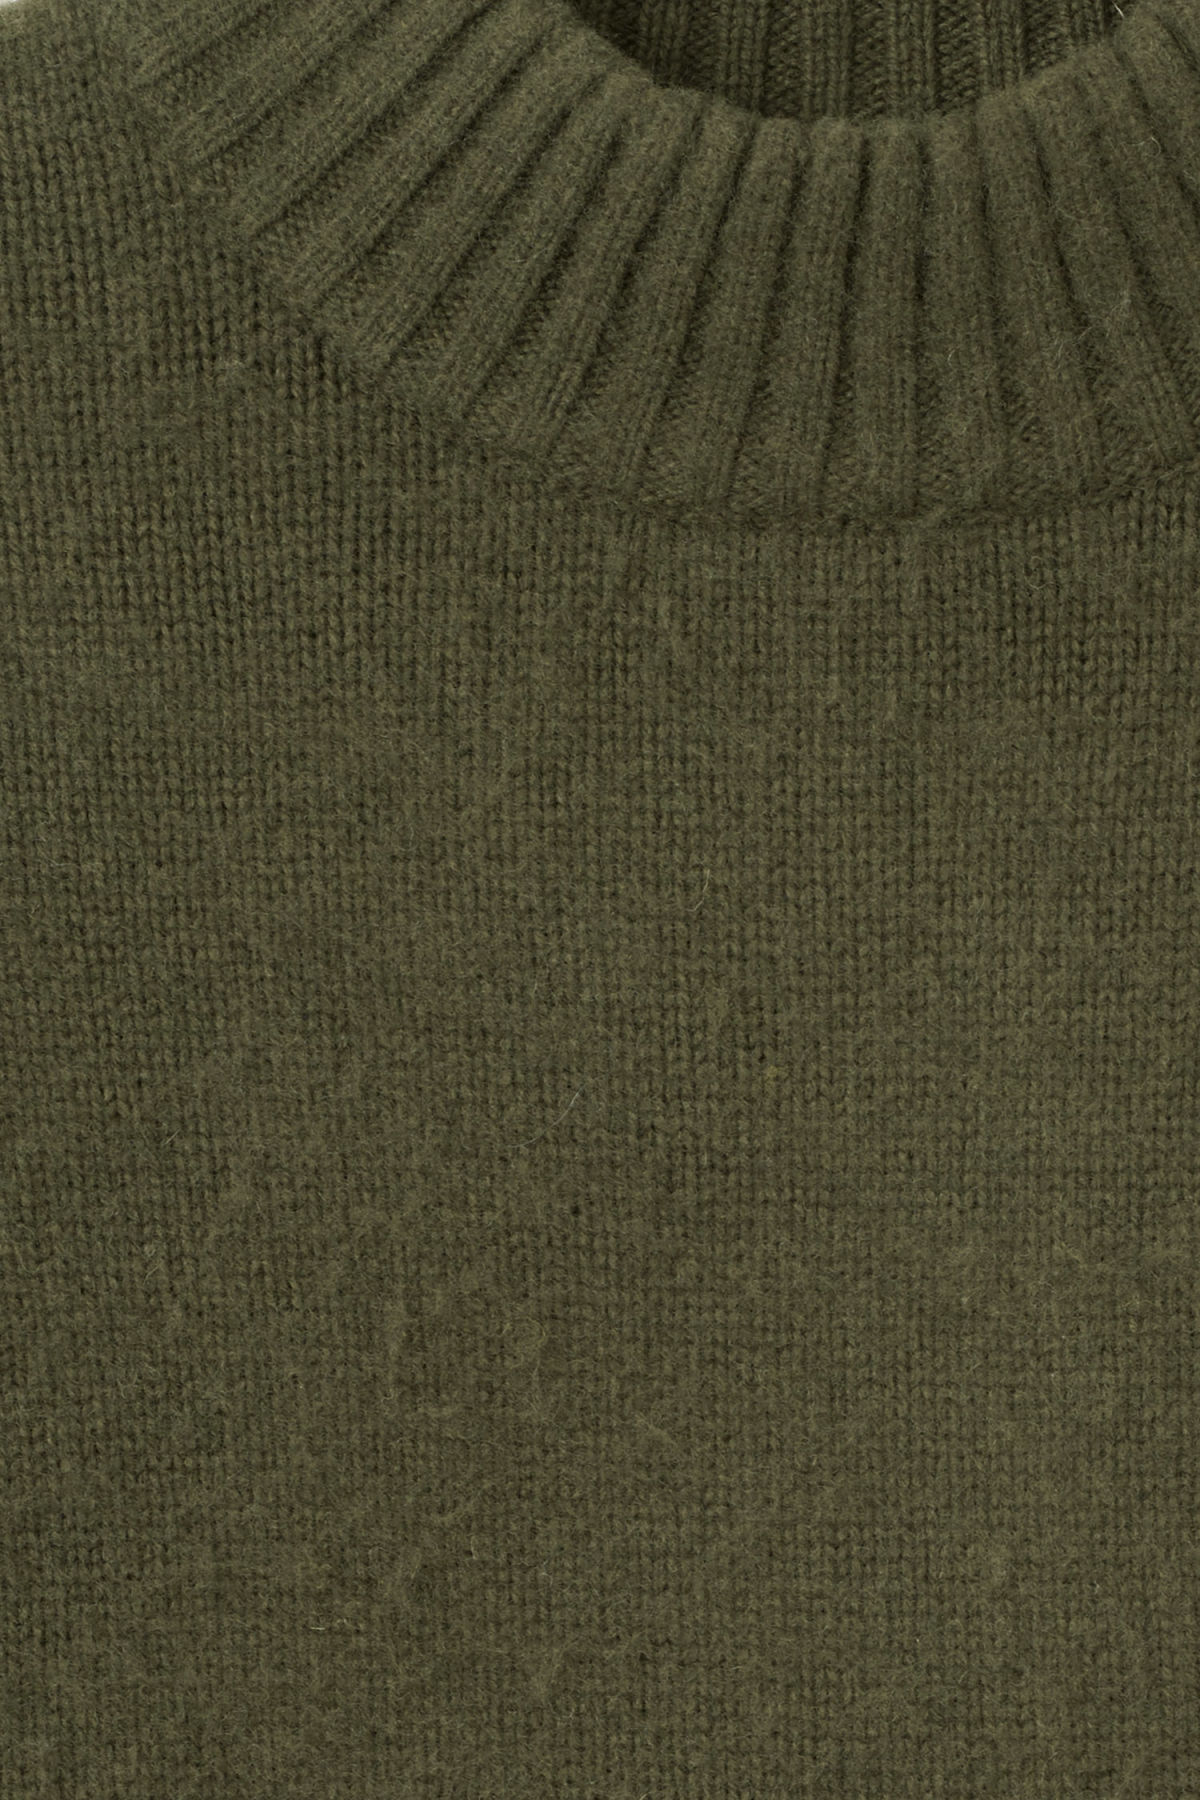 Detailed image of Weekday rock sweater in green